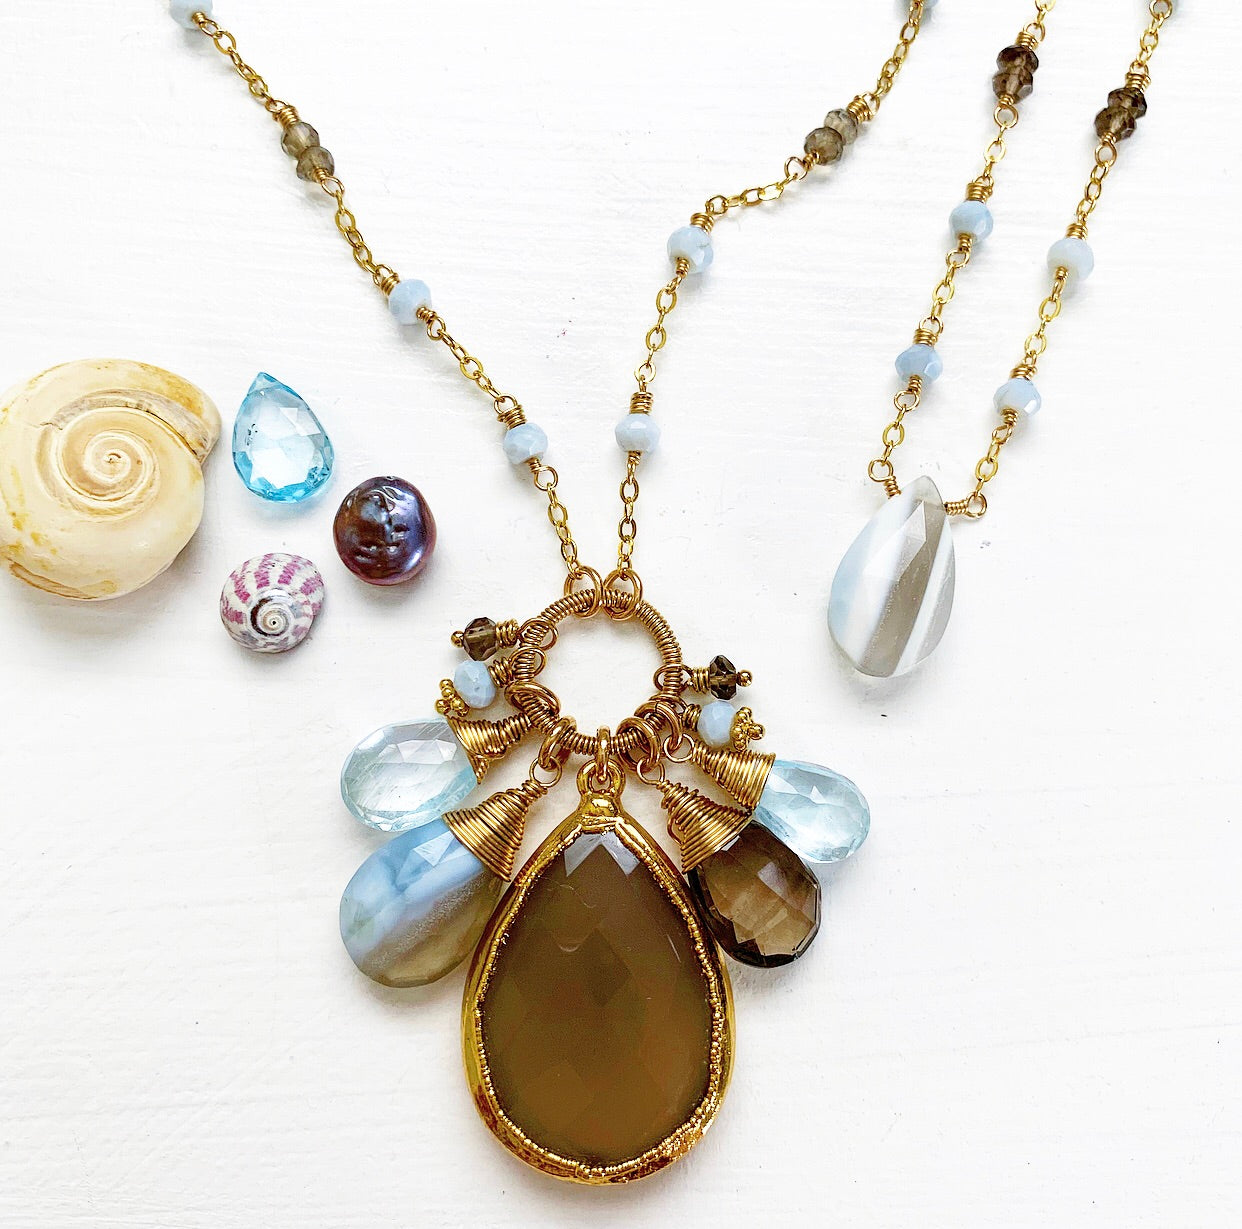 823-One of a Kind Gemstone Drop Necklace